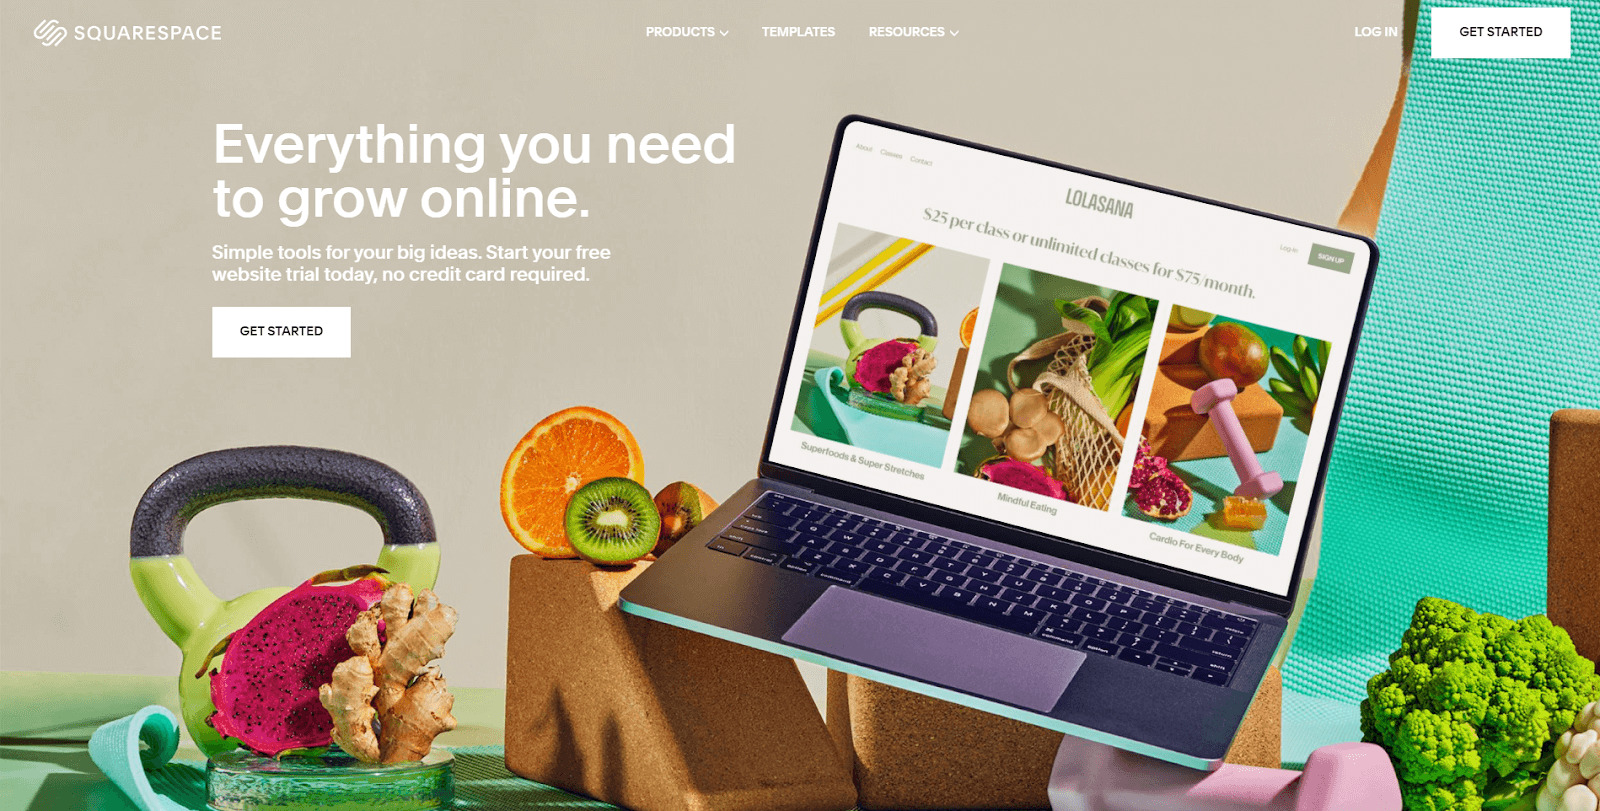 Squarespace is a fierce web development website in the game of design